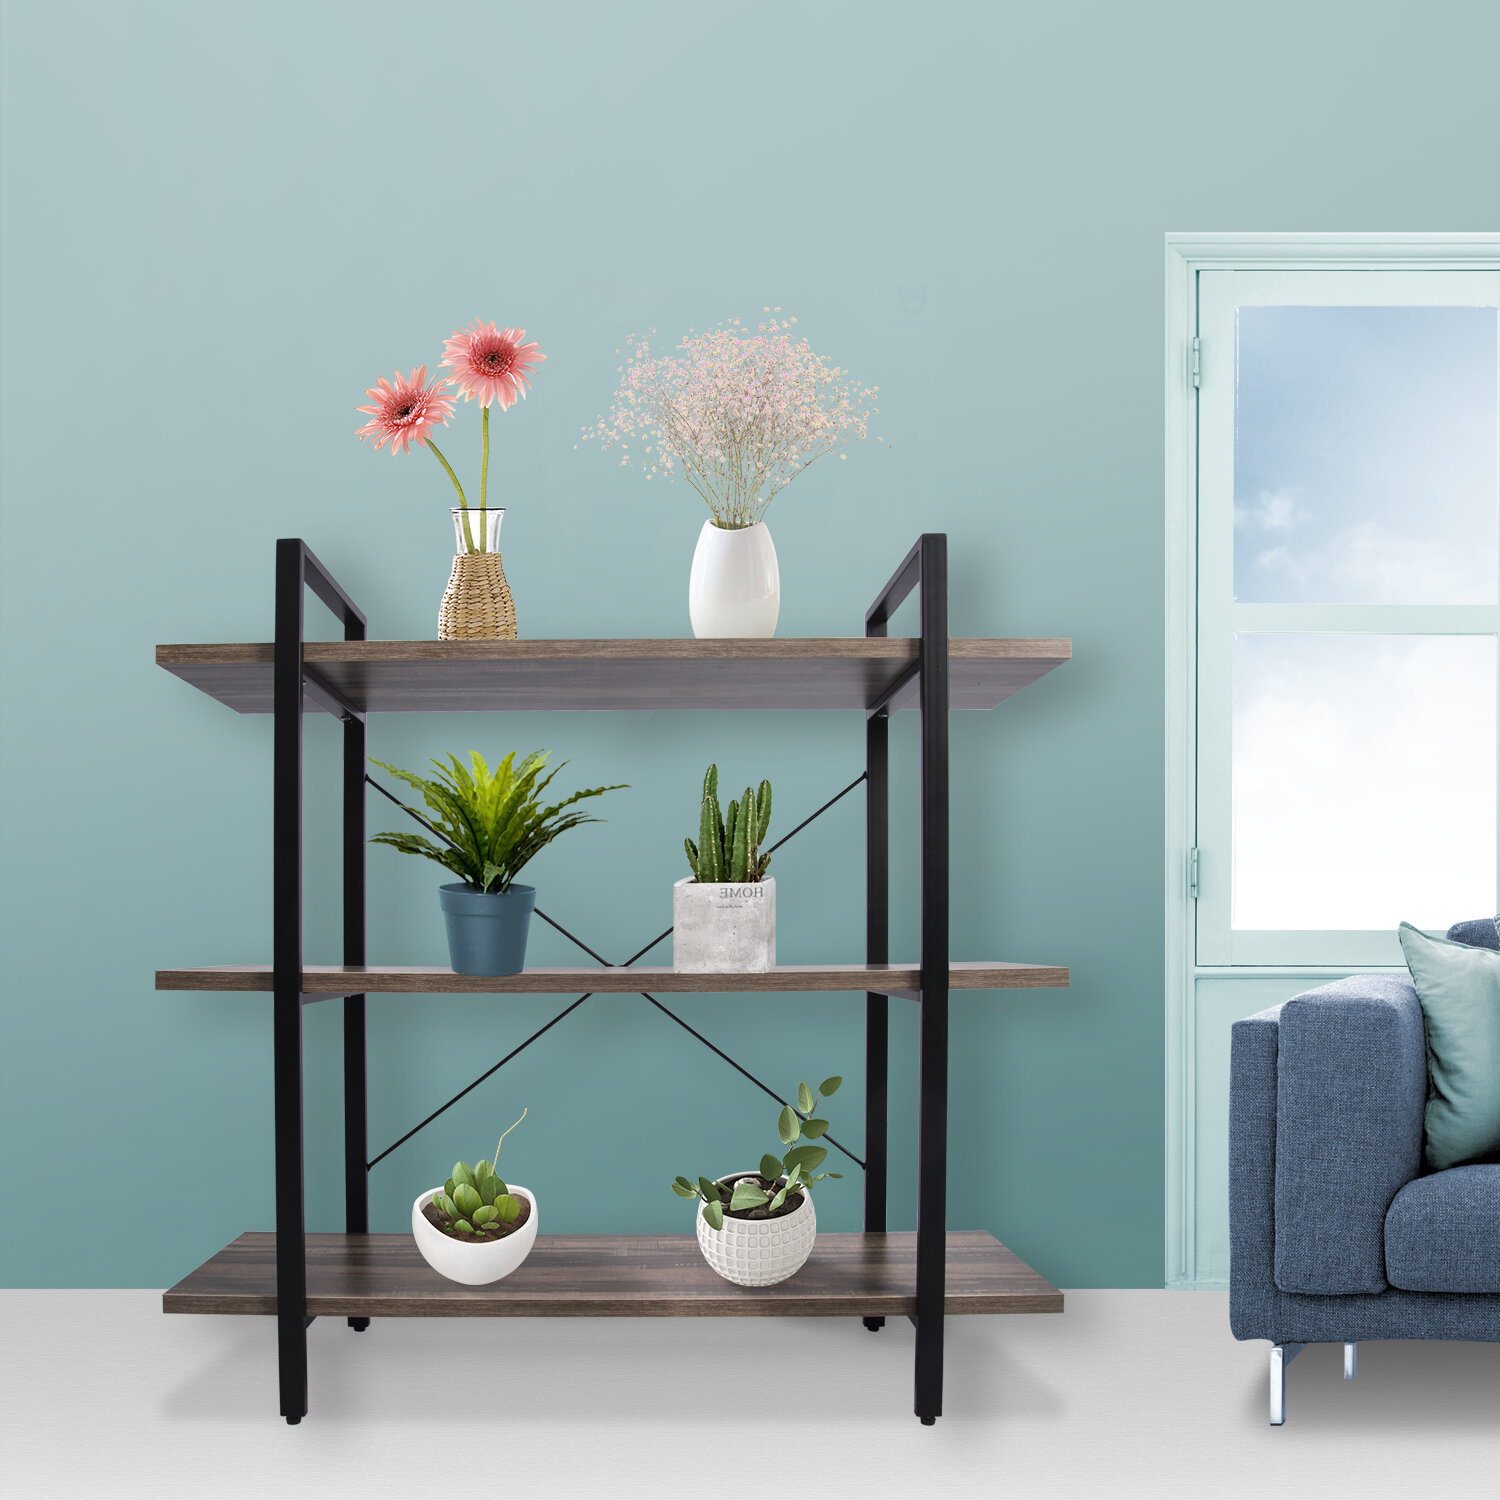 Gracie Oaks Aquino 3 Tier Wood Etagere Bookcase Wayfair Ca